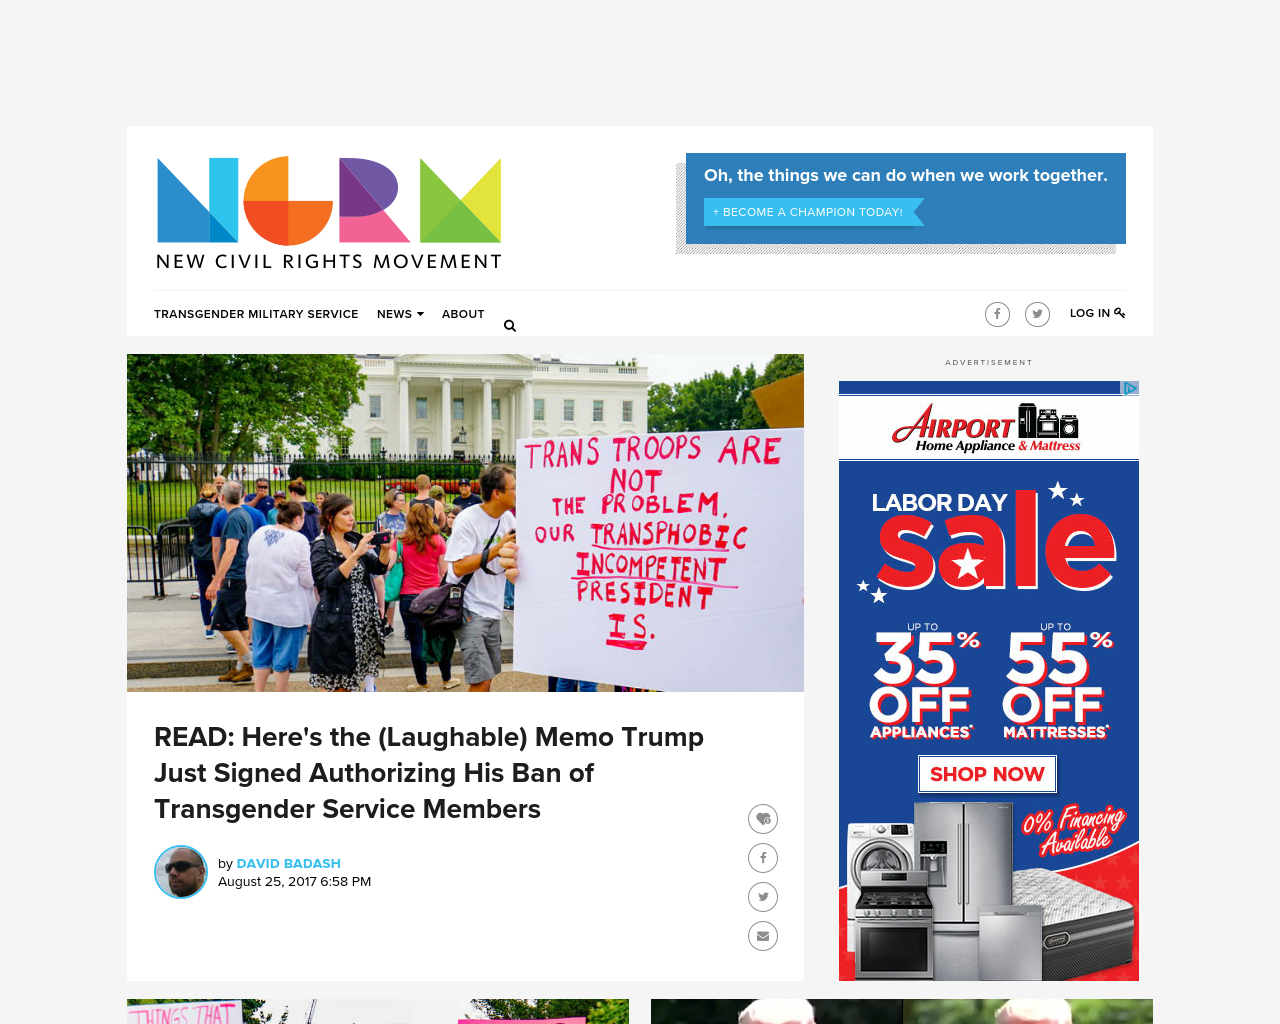 The-New-Civil-Rights-Movement-Advertising-Reviews-Pricing